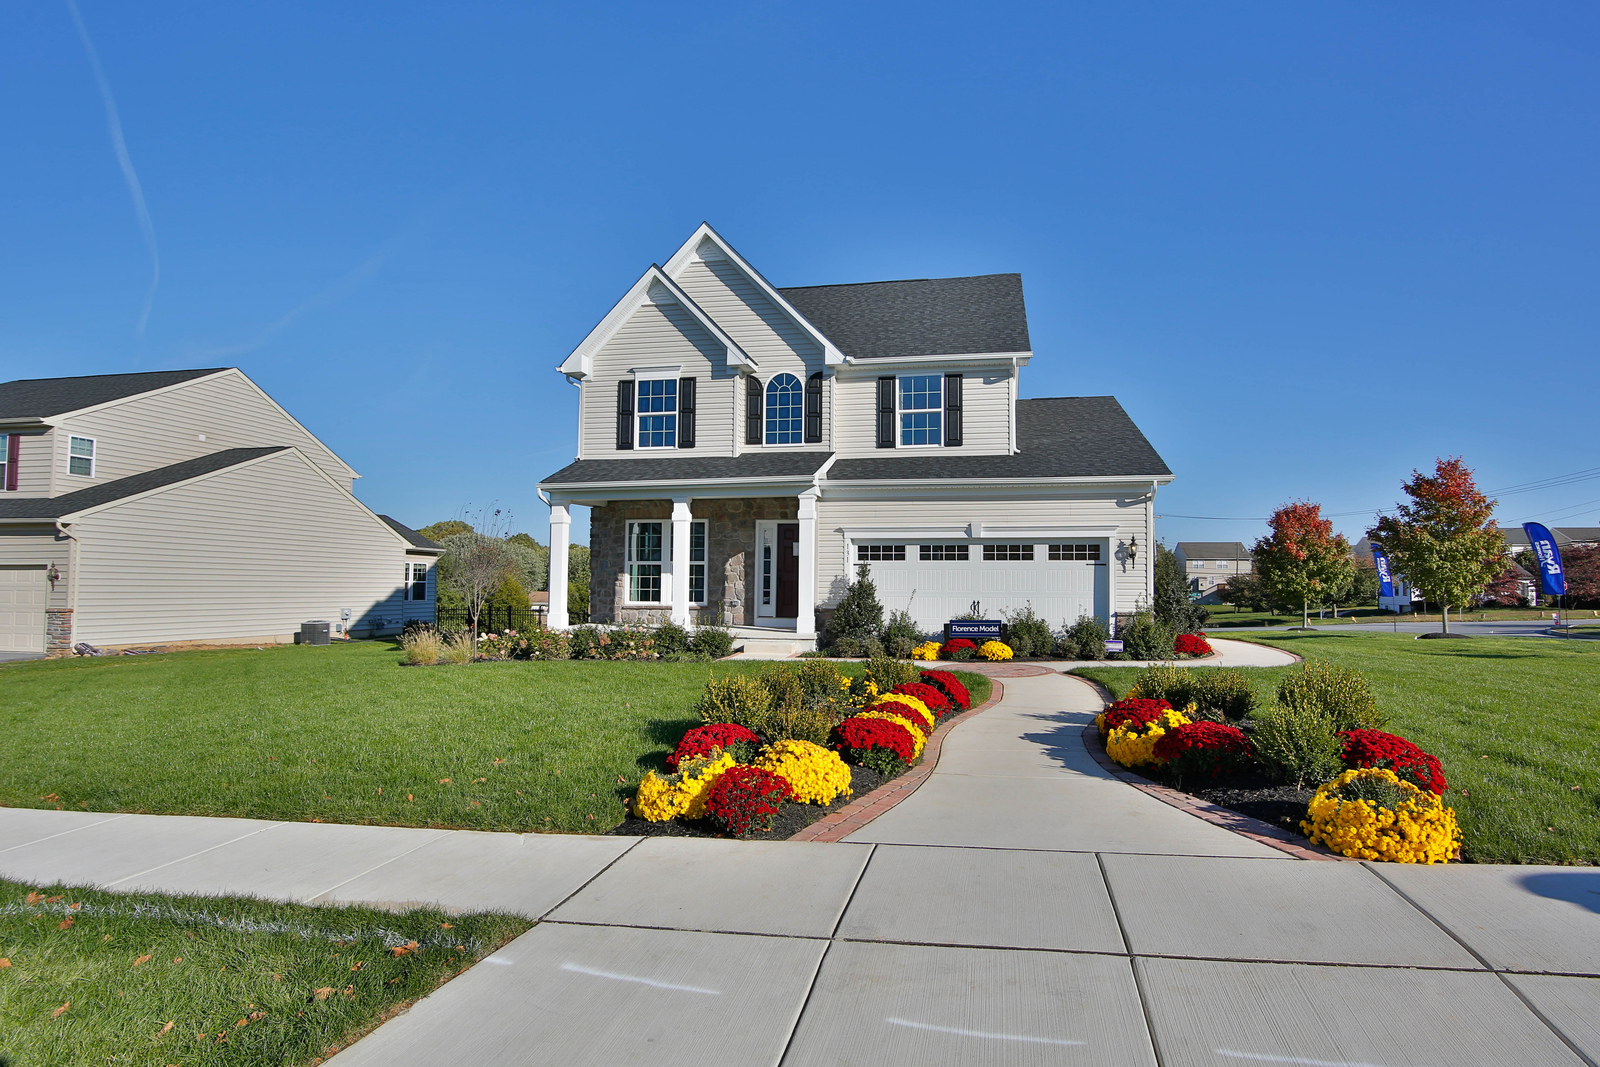 New homes for sale at hickory hollow in smyrna de within for Hickory hollow